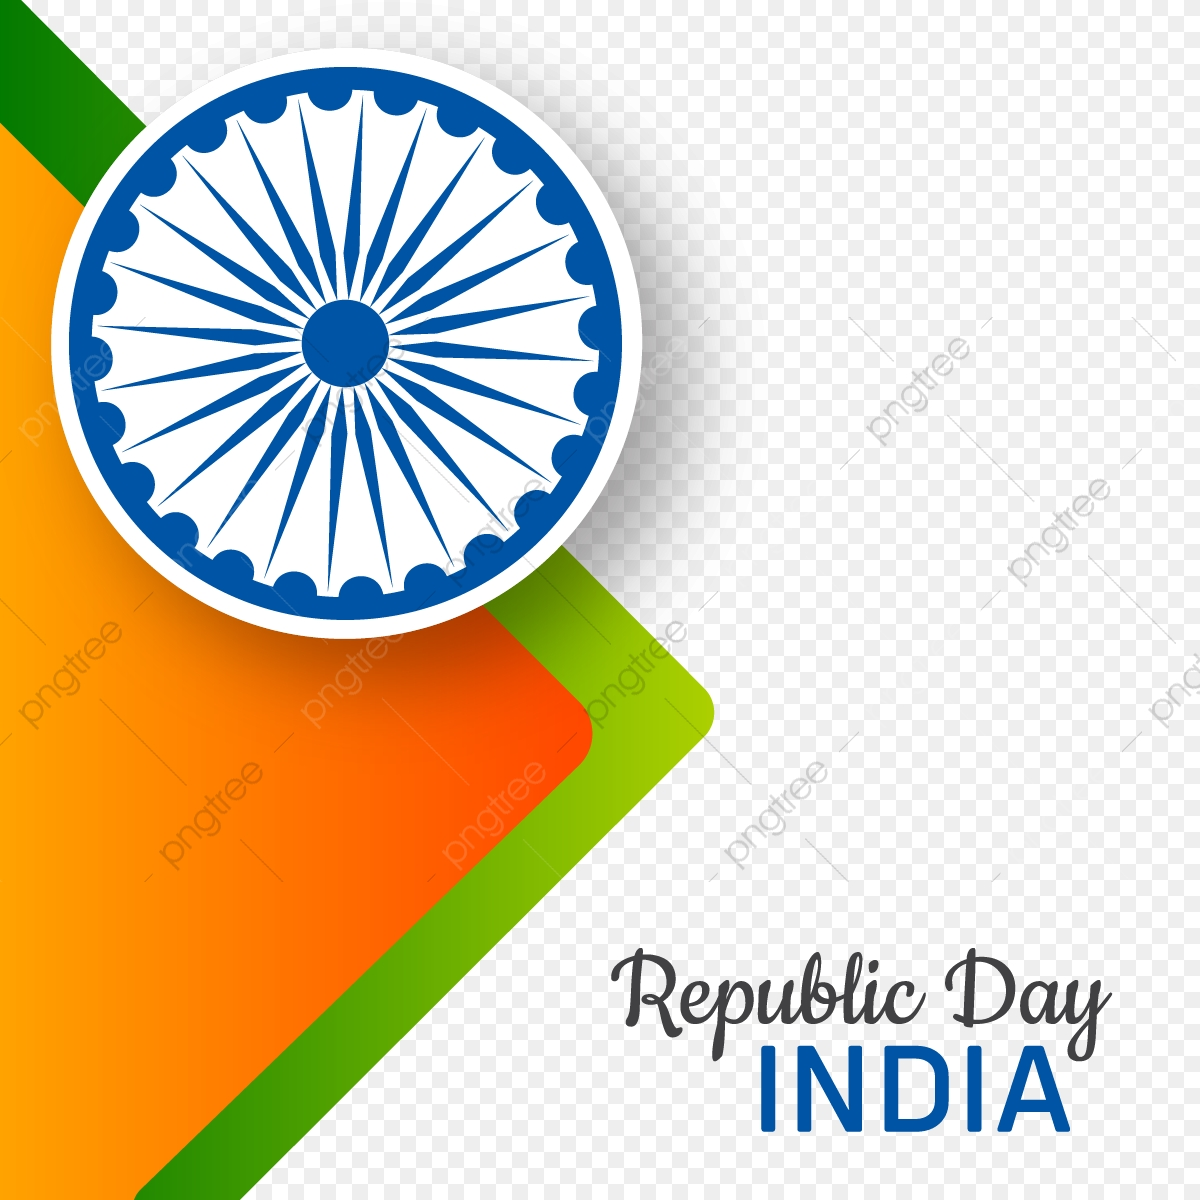 Abstract Style Republic Day India Background India